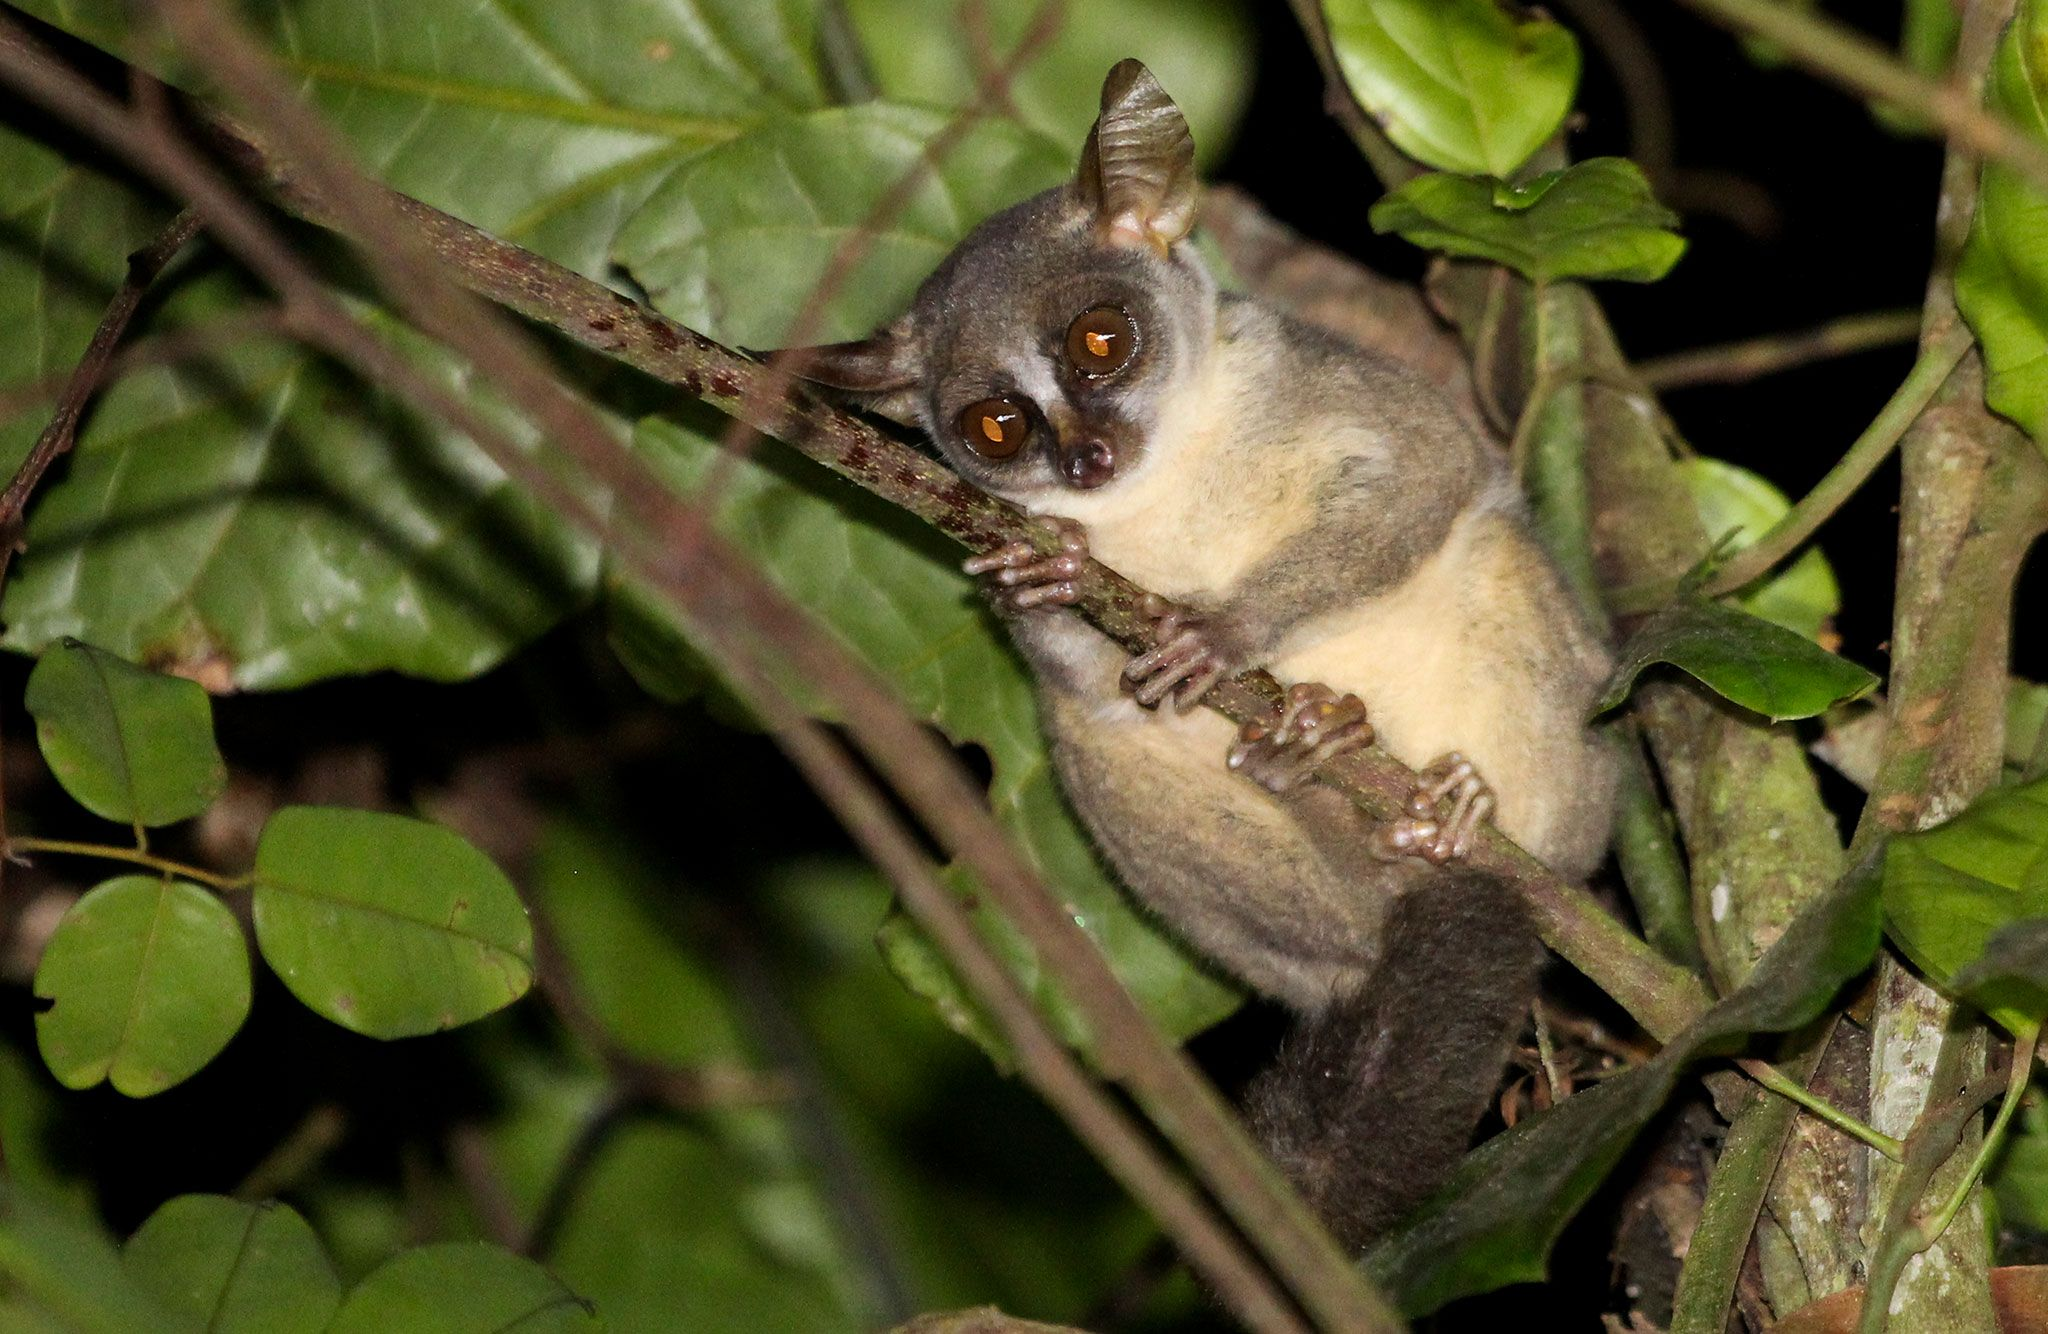 New Dwarf Primate Found, Is Giant Among Its Kin | Primates, Weird animals,  African wildlife